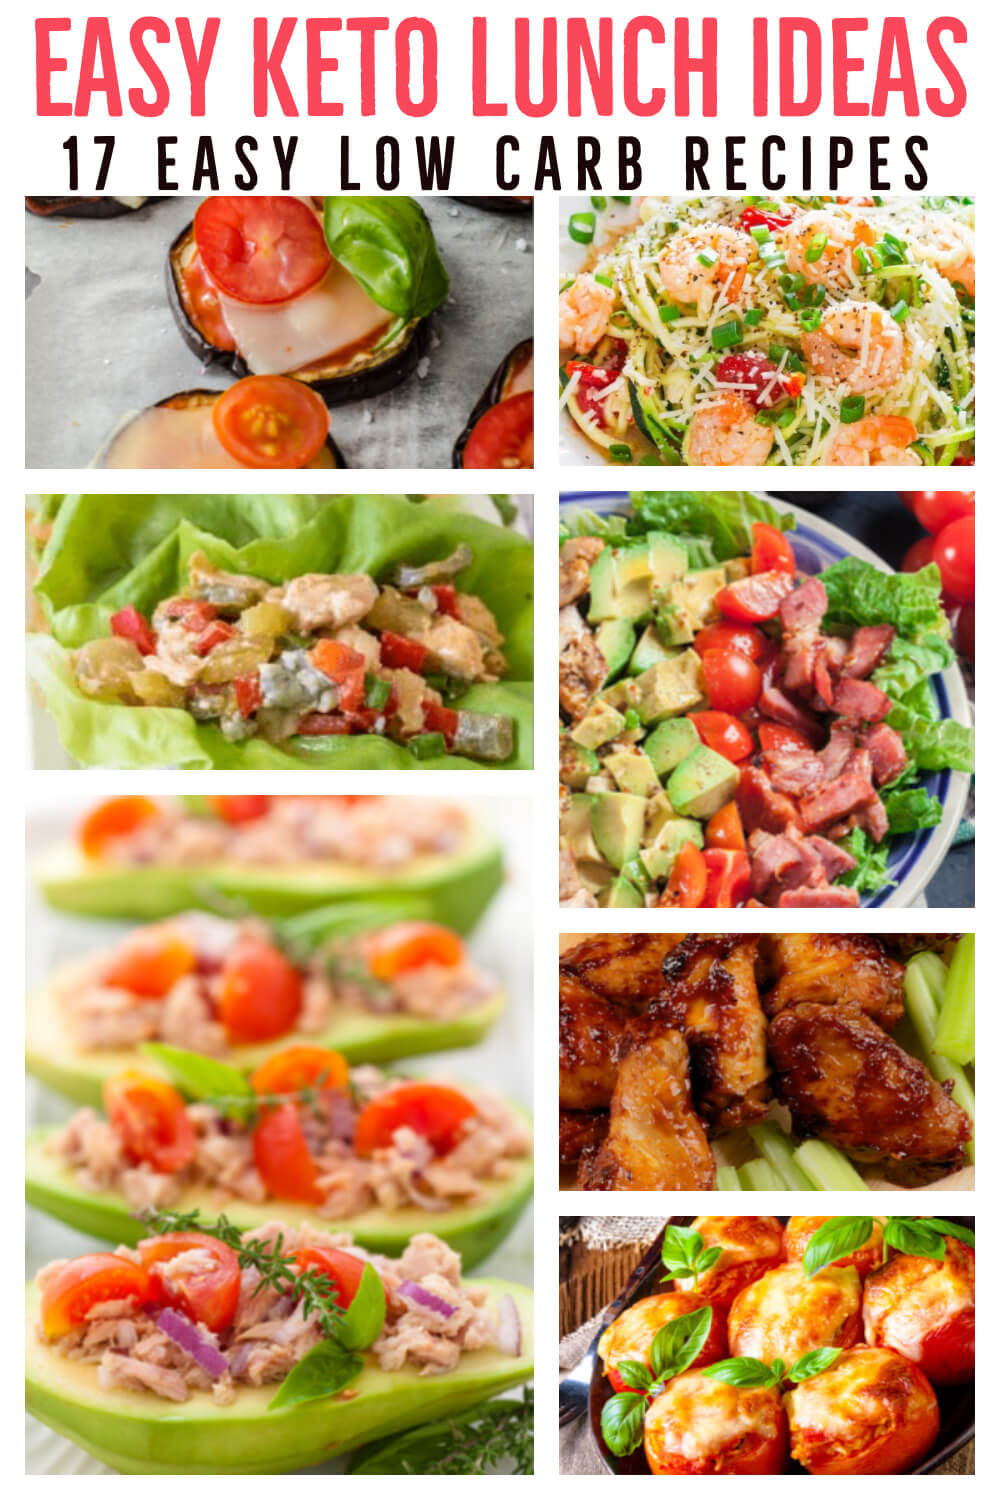 Keto Lunch Ideas! 21 low carb keto lunch recipes perfect for work, home or on the go! These simple recipes make losing weight on the ketogenic diet easy! Easy low carb lunch ideas you can meal prep or make fast with shrimp, chicken, tuna,& ground beef! With easy keto salads, wraps, bowls, & vegetarian options you'll never run out of keto lunch ideas! #keto #ketorecipes #lowcarb